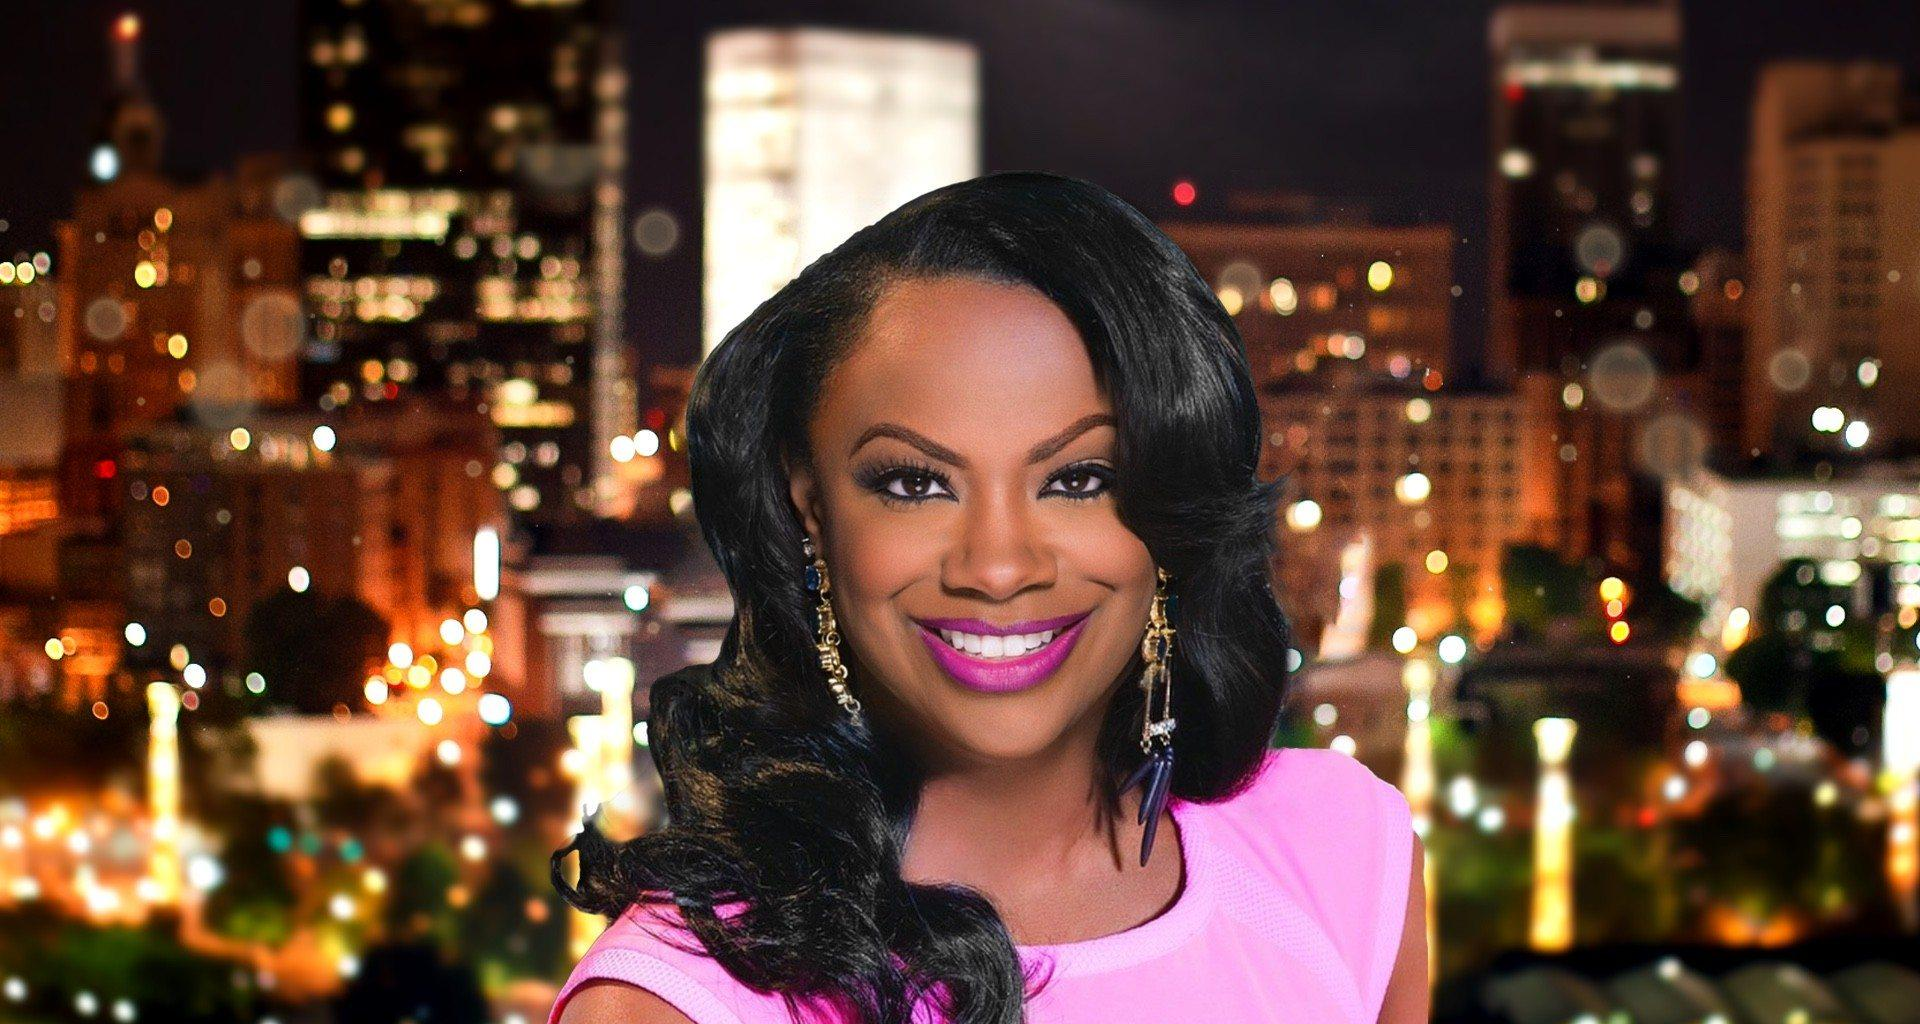 Kandi Burruss Looks Amazing While Hosting 'Strahan And Sara' - Check Out Her Latest Pics